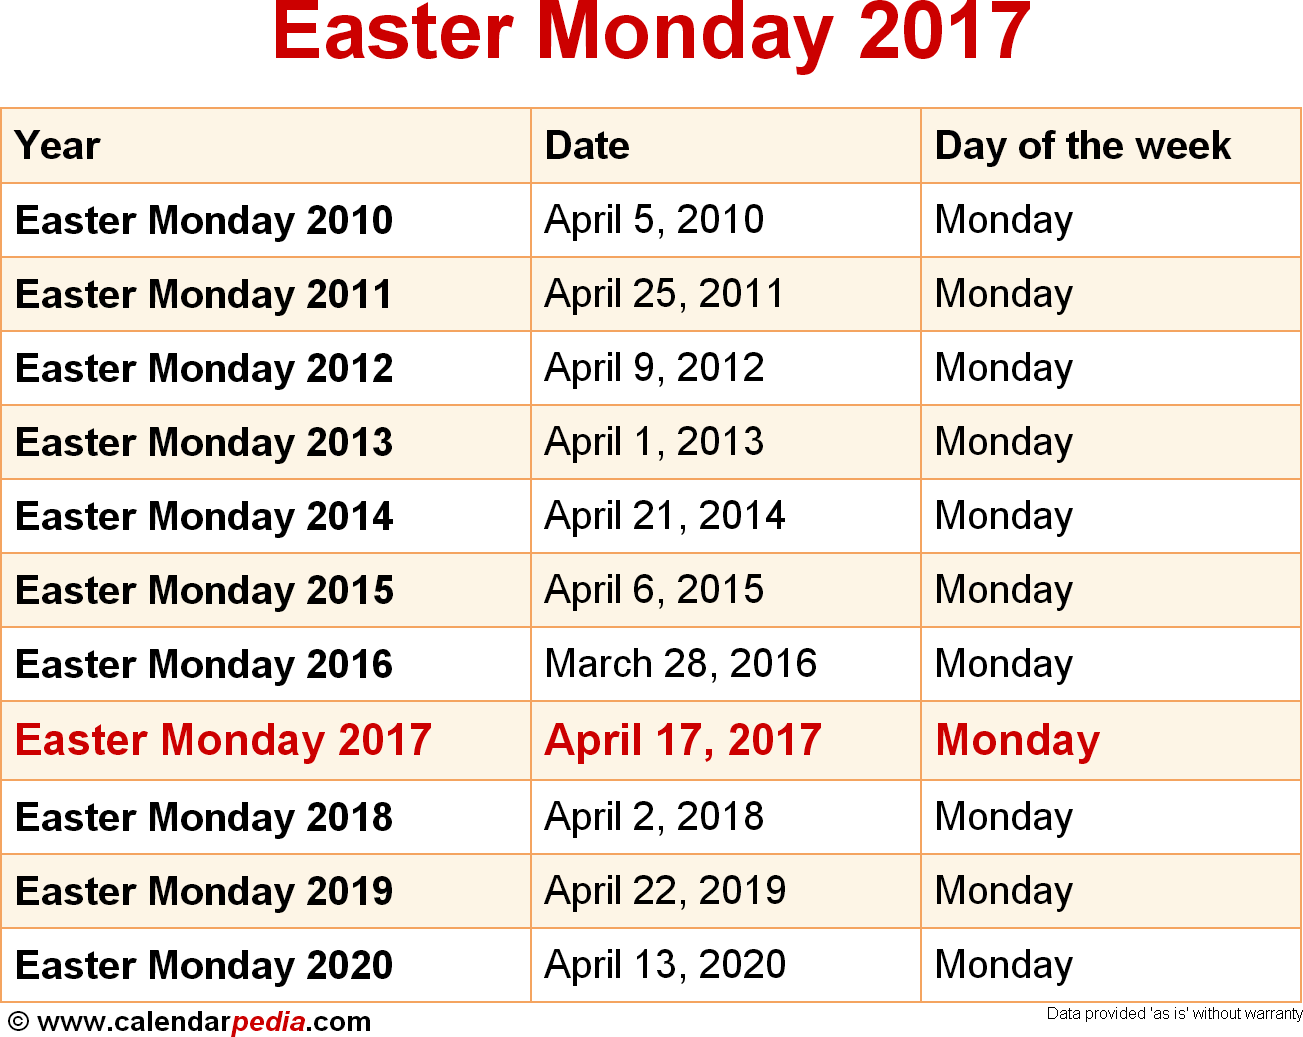 Easter Monday 2017